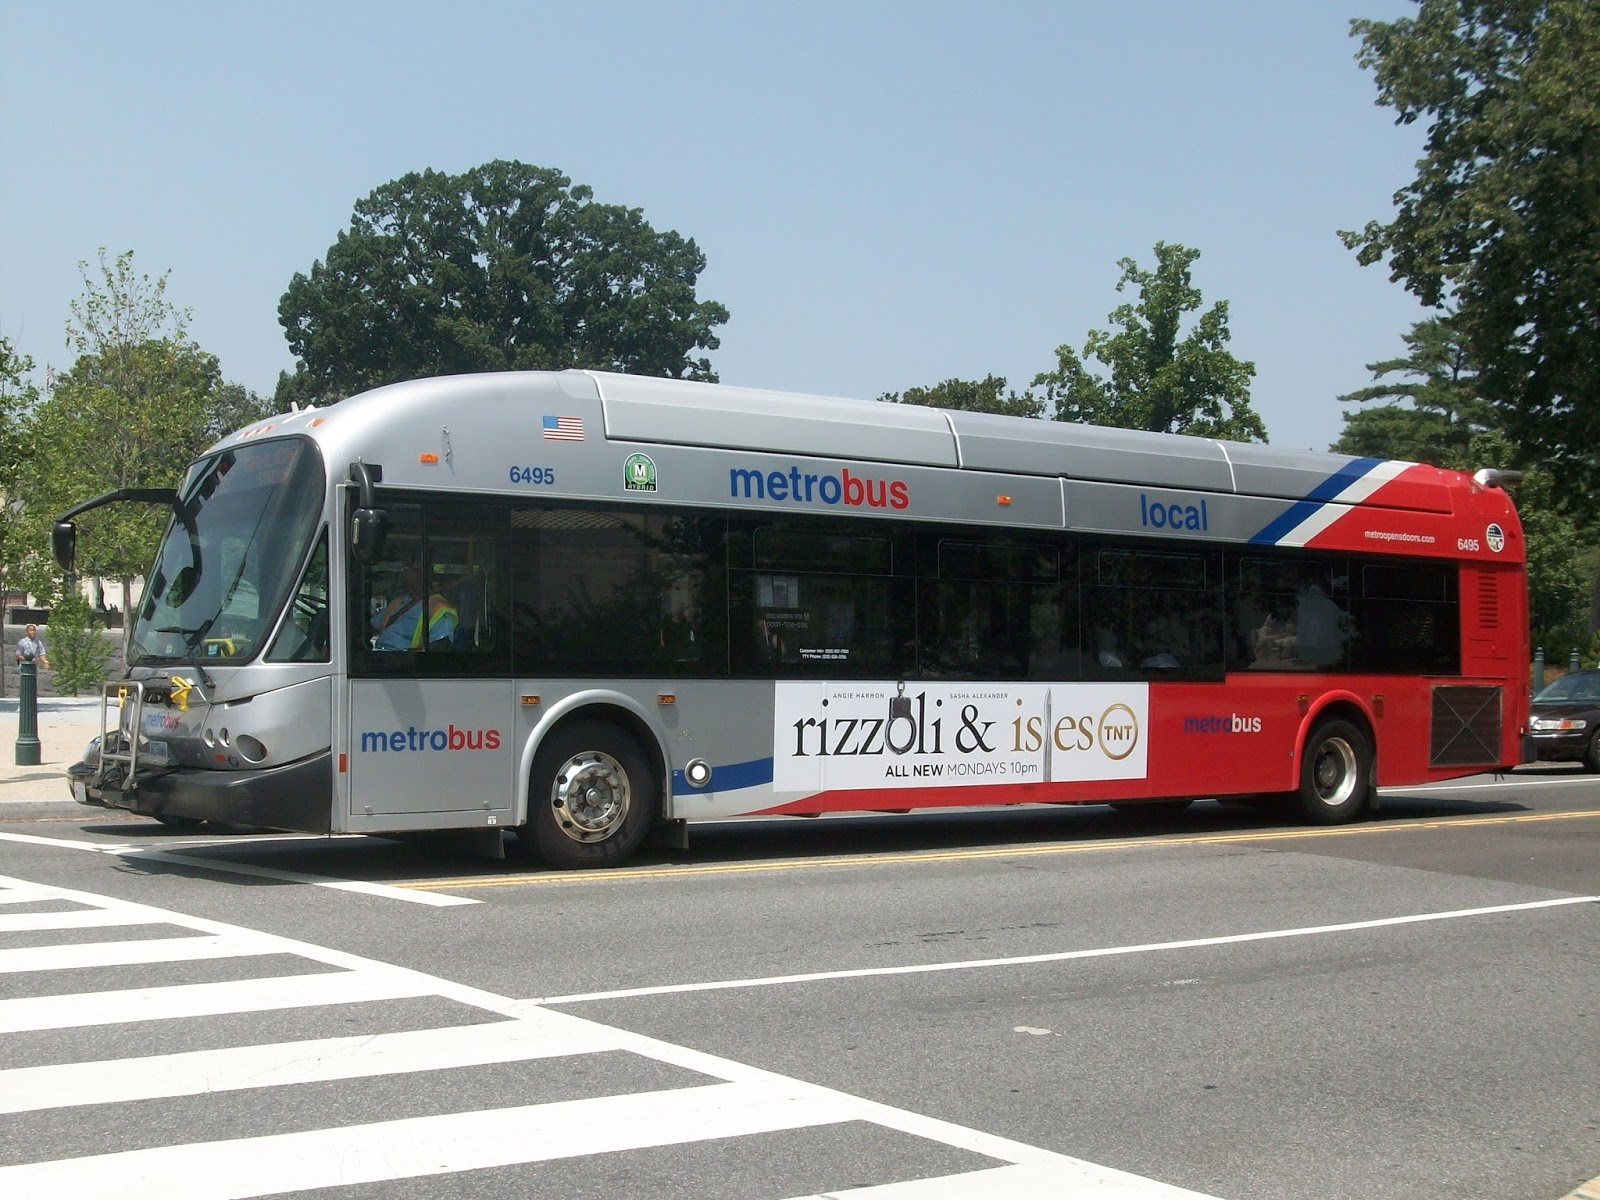 Charge your phone at the bus stop as Metrobus unveils 'smart kiosks'